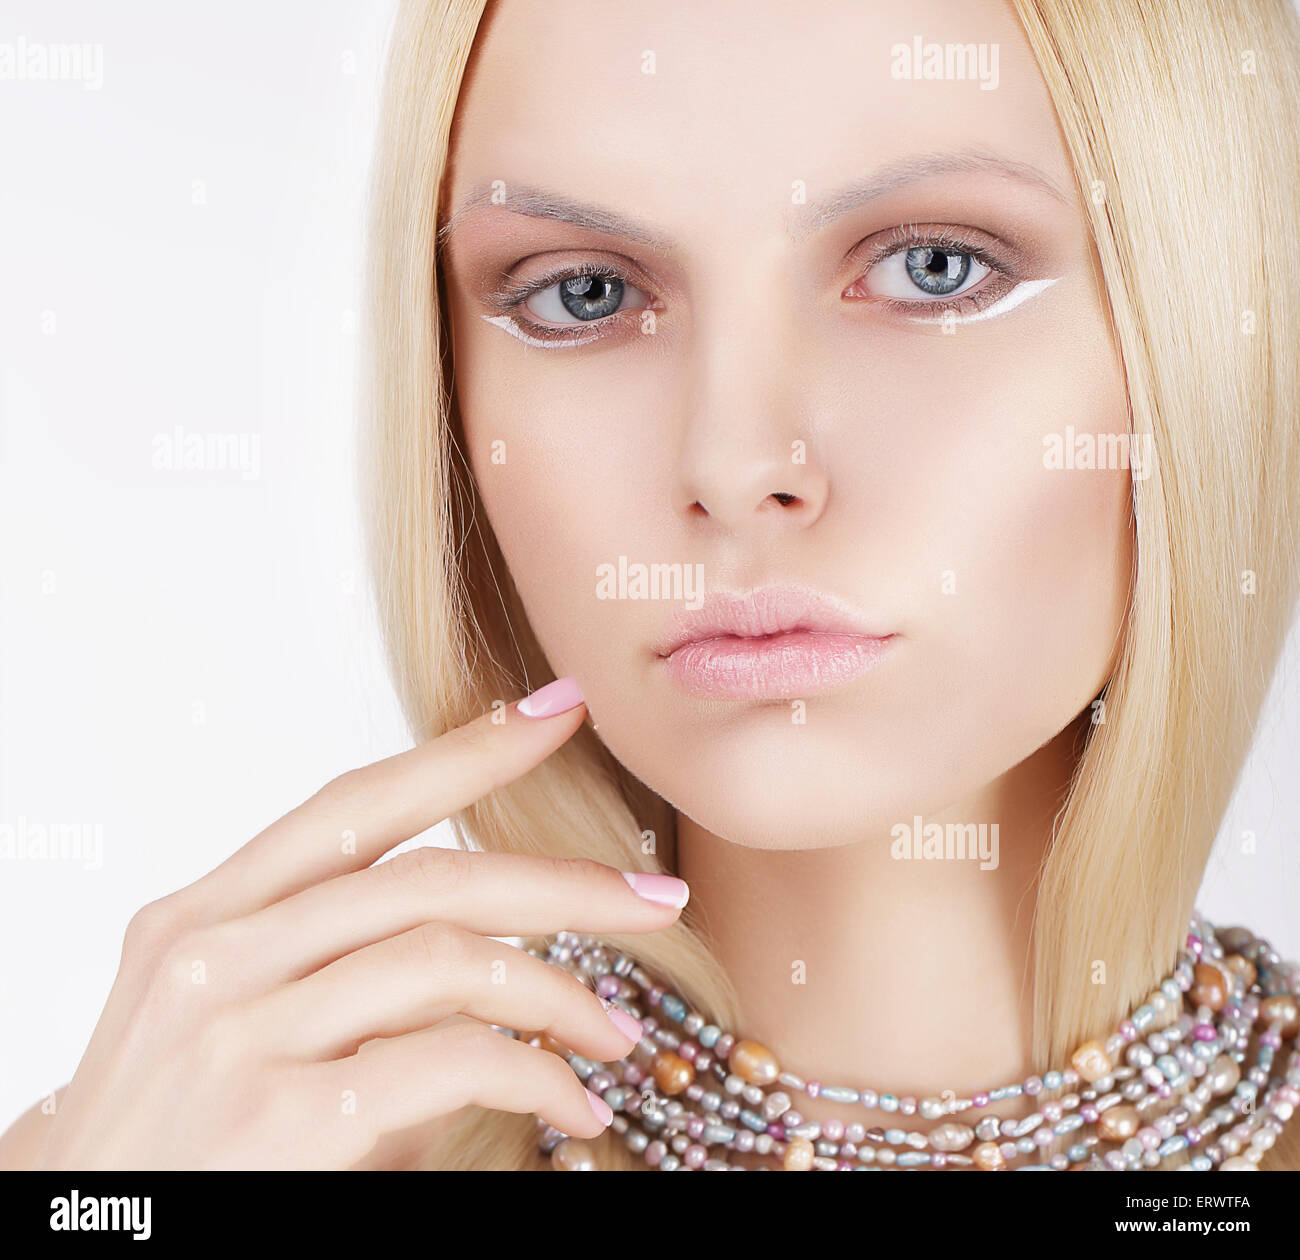 Sophisticated Lovely Blonde Touching Her Face Stock Photo